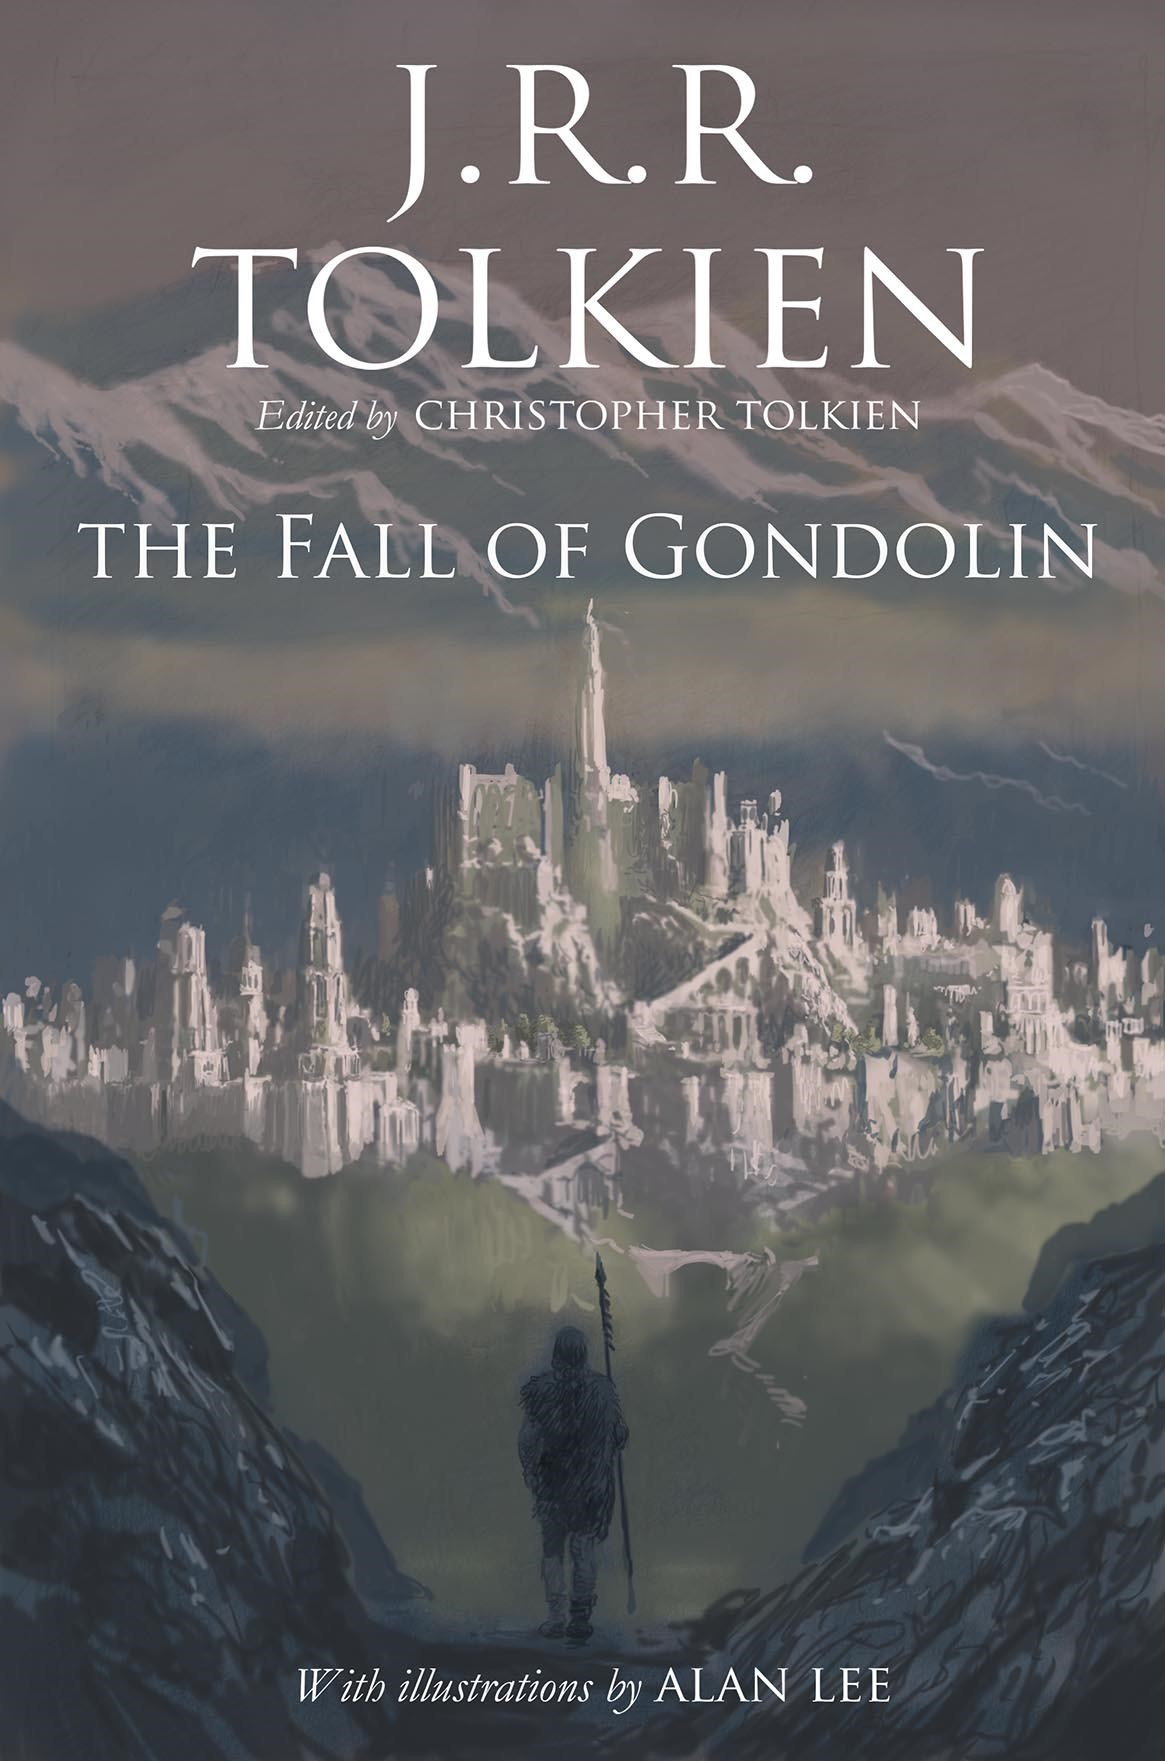 Return to Middle-Earth for Houghton Mifflin Harcourt